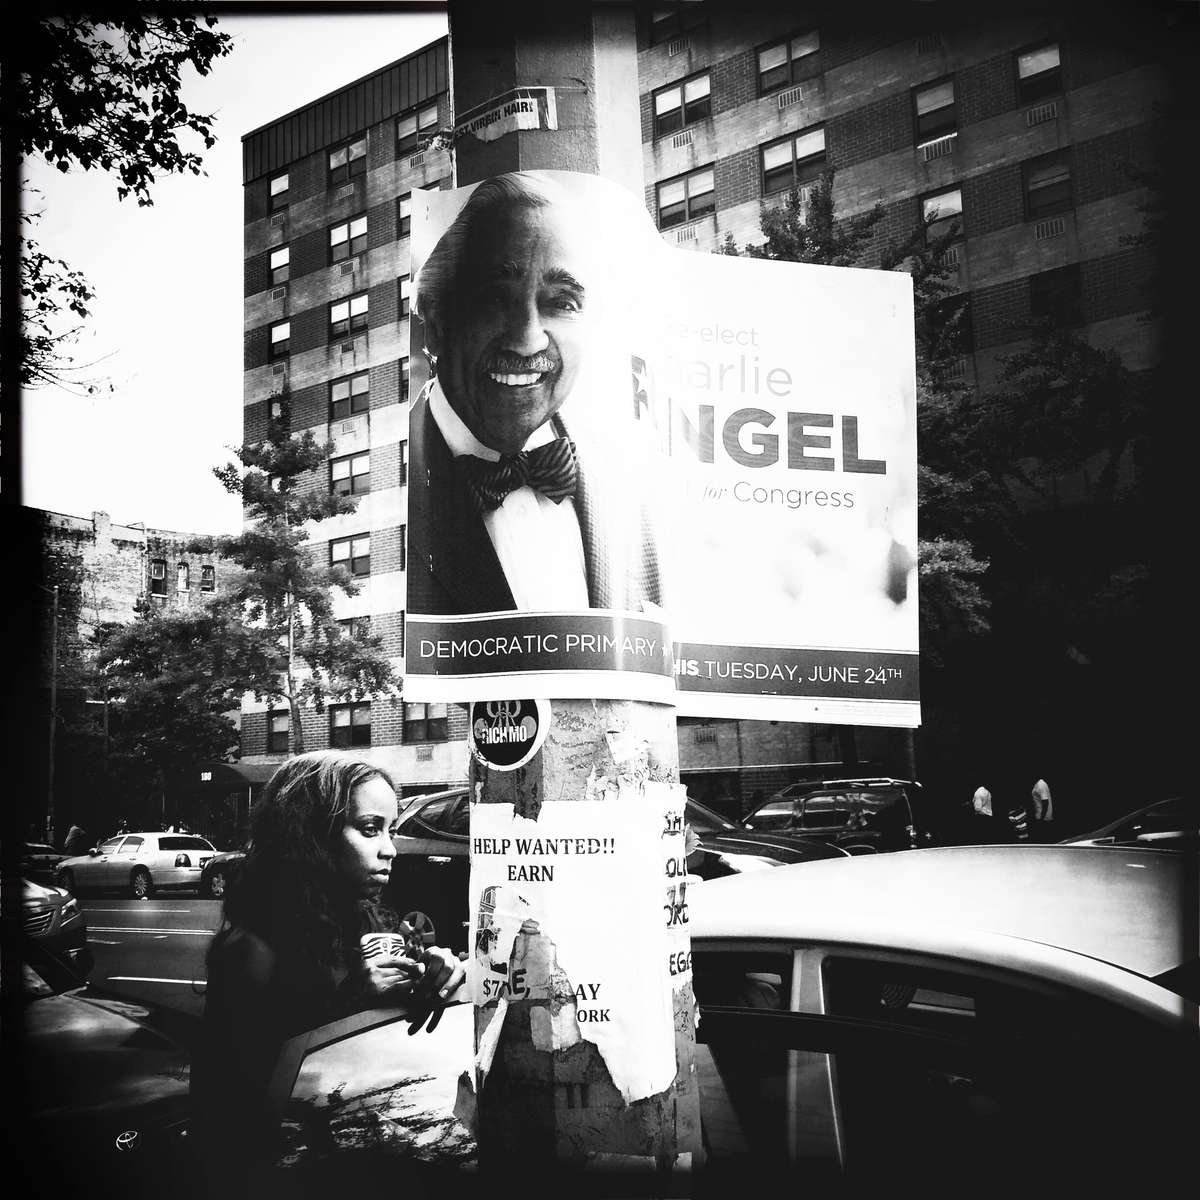 A woman near Congressman Charles Rangel's campaigning poster in Harlem, New York, as the community is changing radically. This was shot on Sunday, June 22 2014. Yet today i want to post because of the primary day.